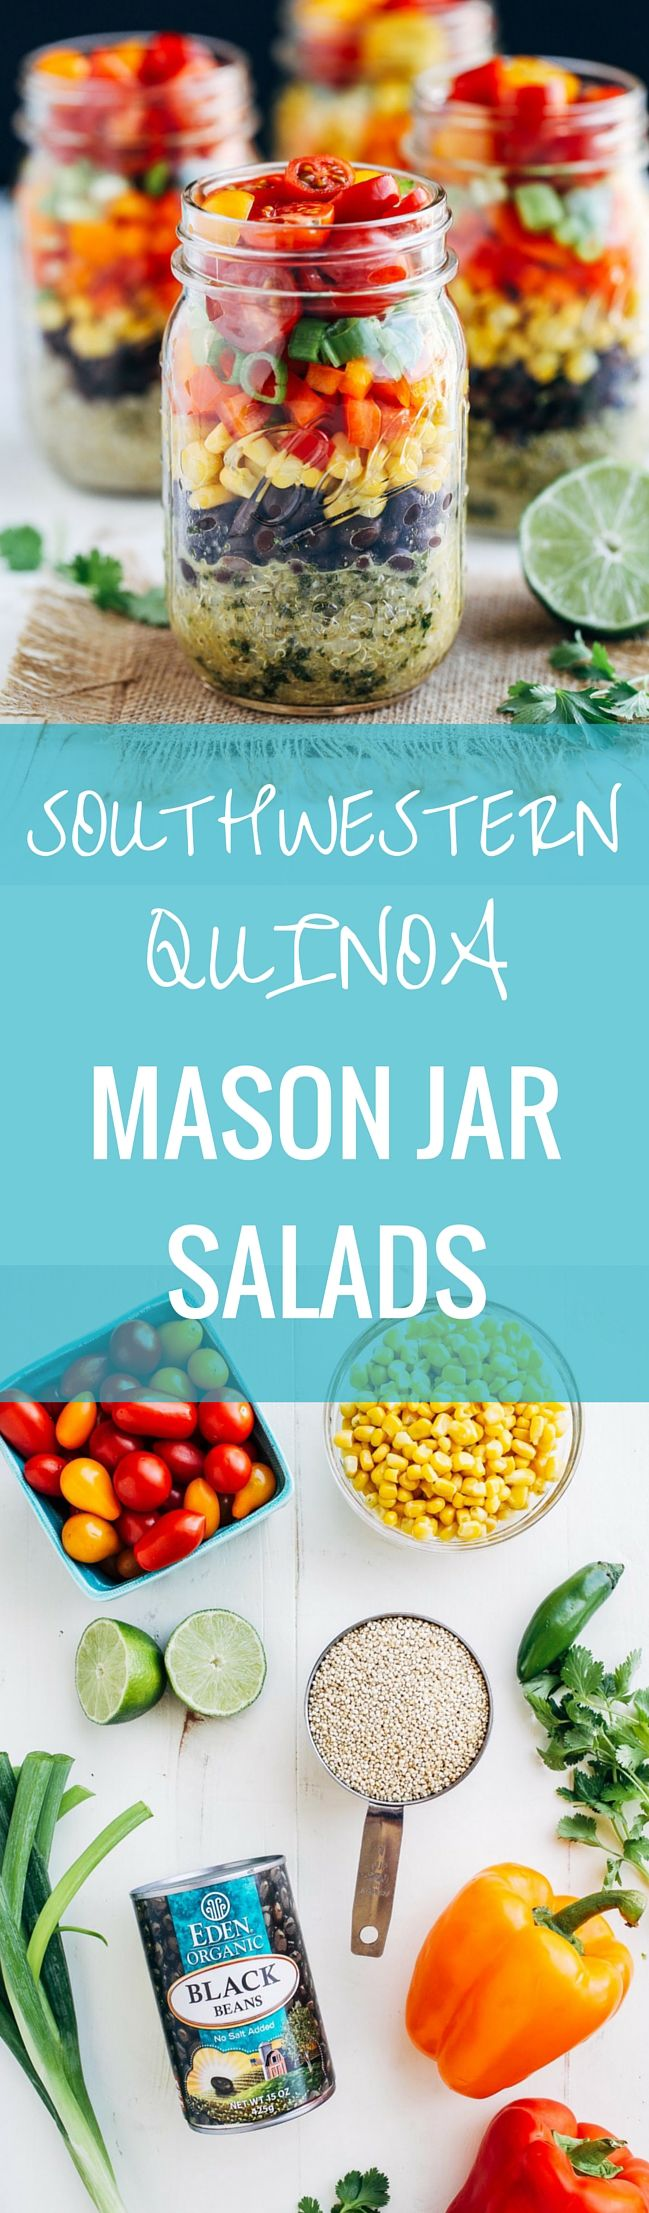 Southwestern Quinoa Mason Jar Salads- quinoa layered with a cumin lime dressing, black beans, corn, bell peppers and cherry tomatoes. Perfect to prep for delicious and healthy lunches during the week! (vegan + gluten-free)